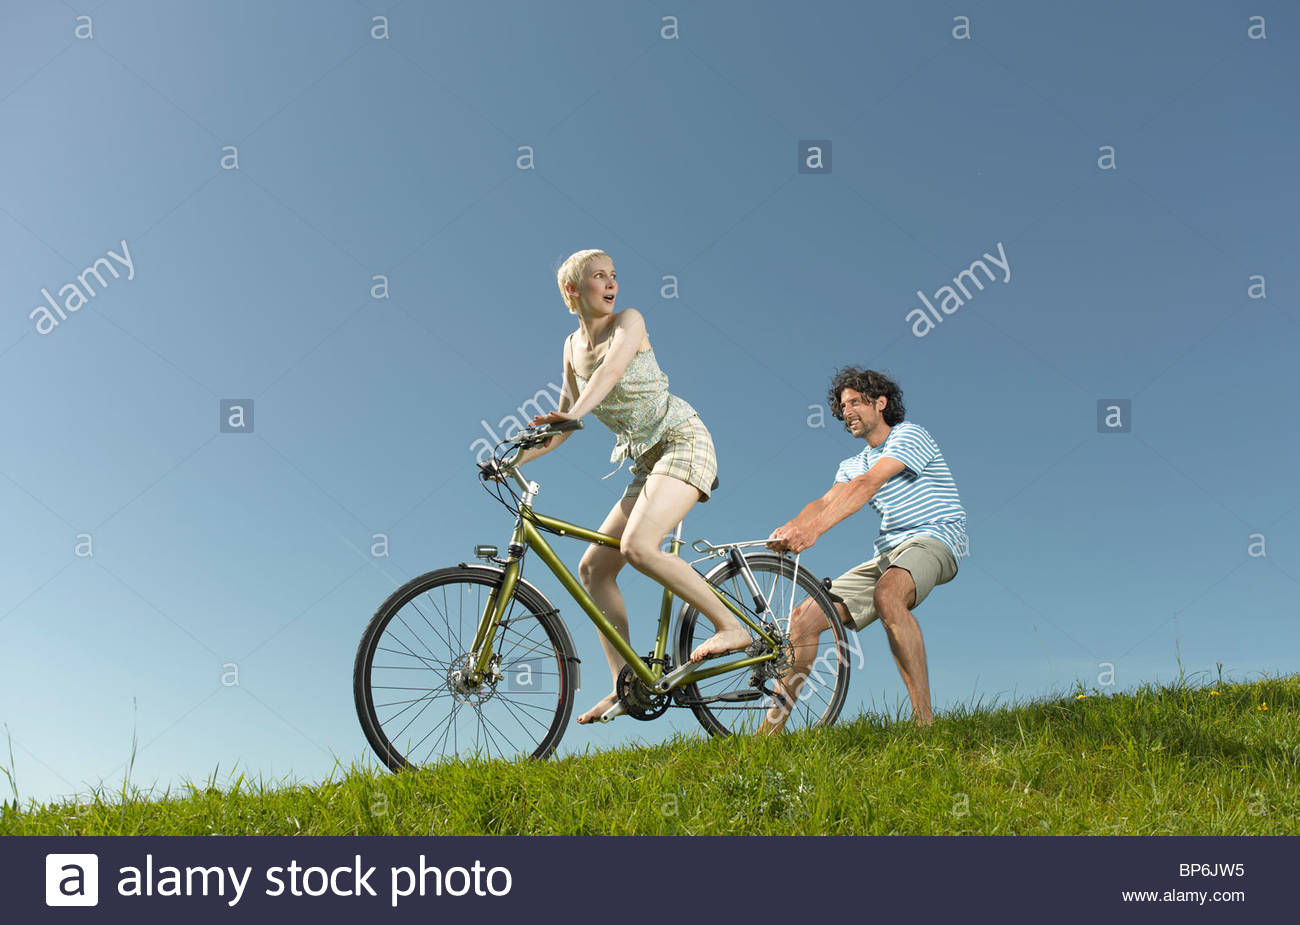 A woman on a bicycle, man holding onto the back - Stock Image